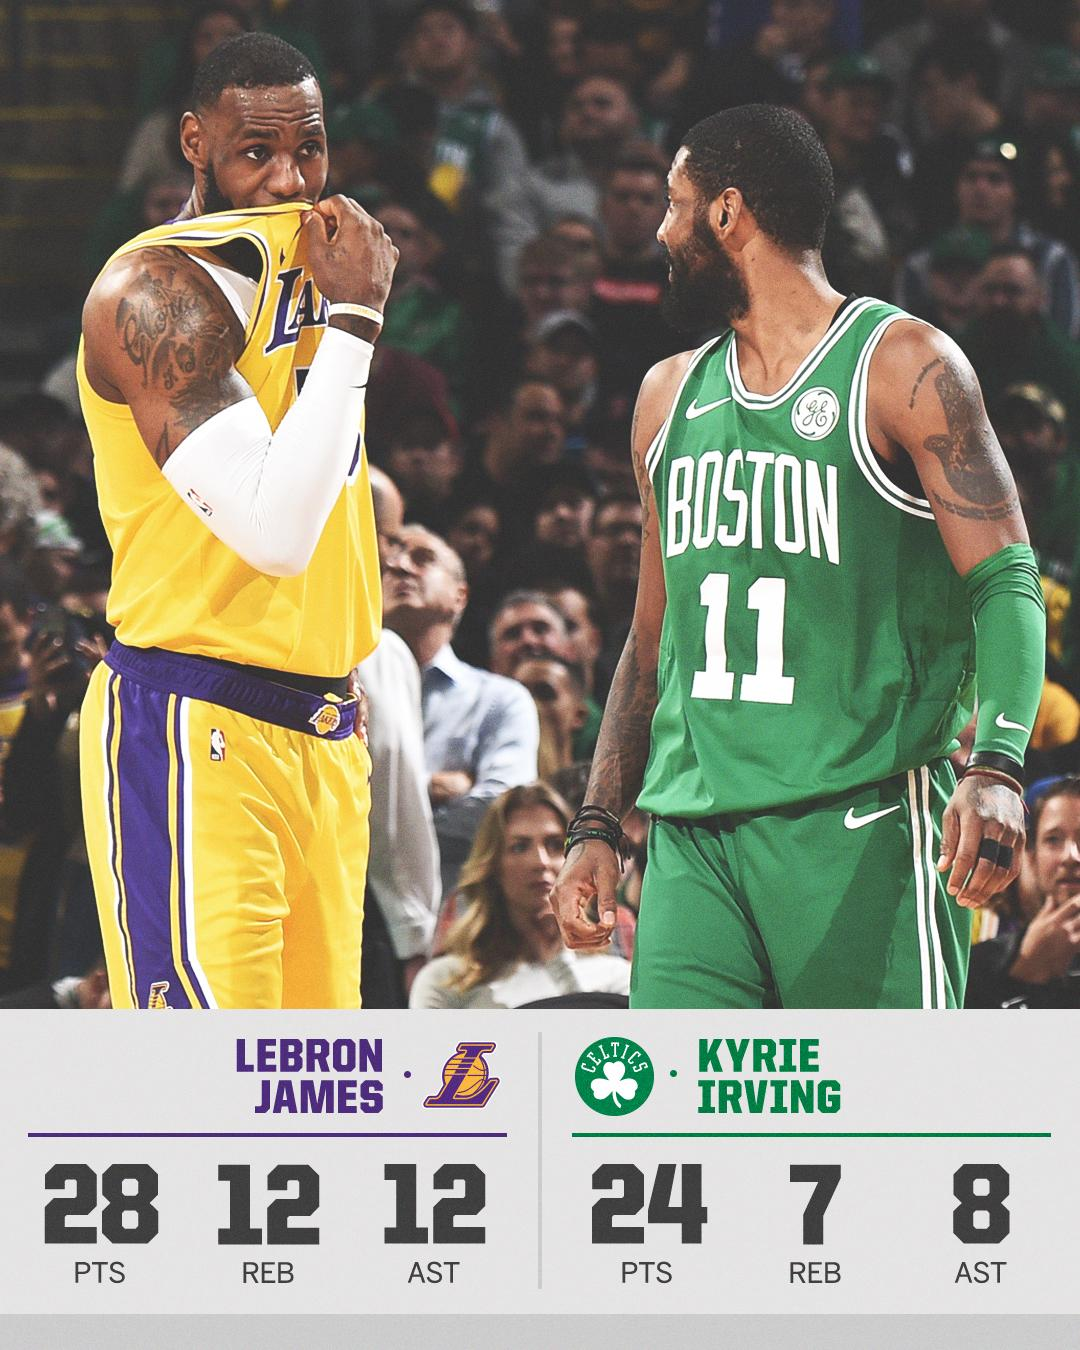 LeBron led the Lakers to their largest comeback win of the season in Kyrie's house. https://t.co/u5eFXaYD2Q